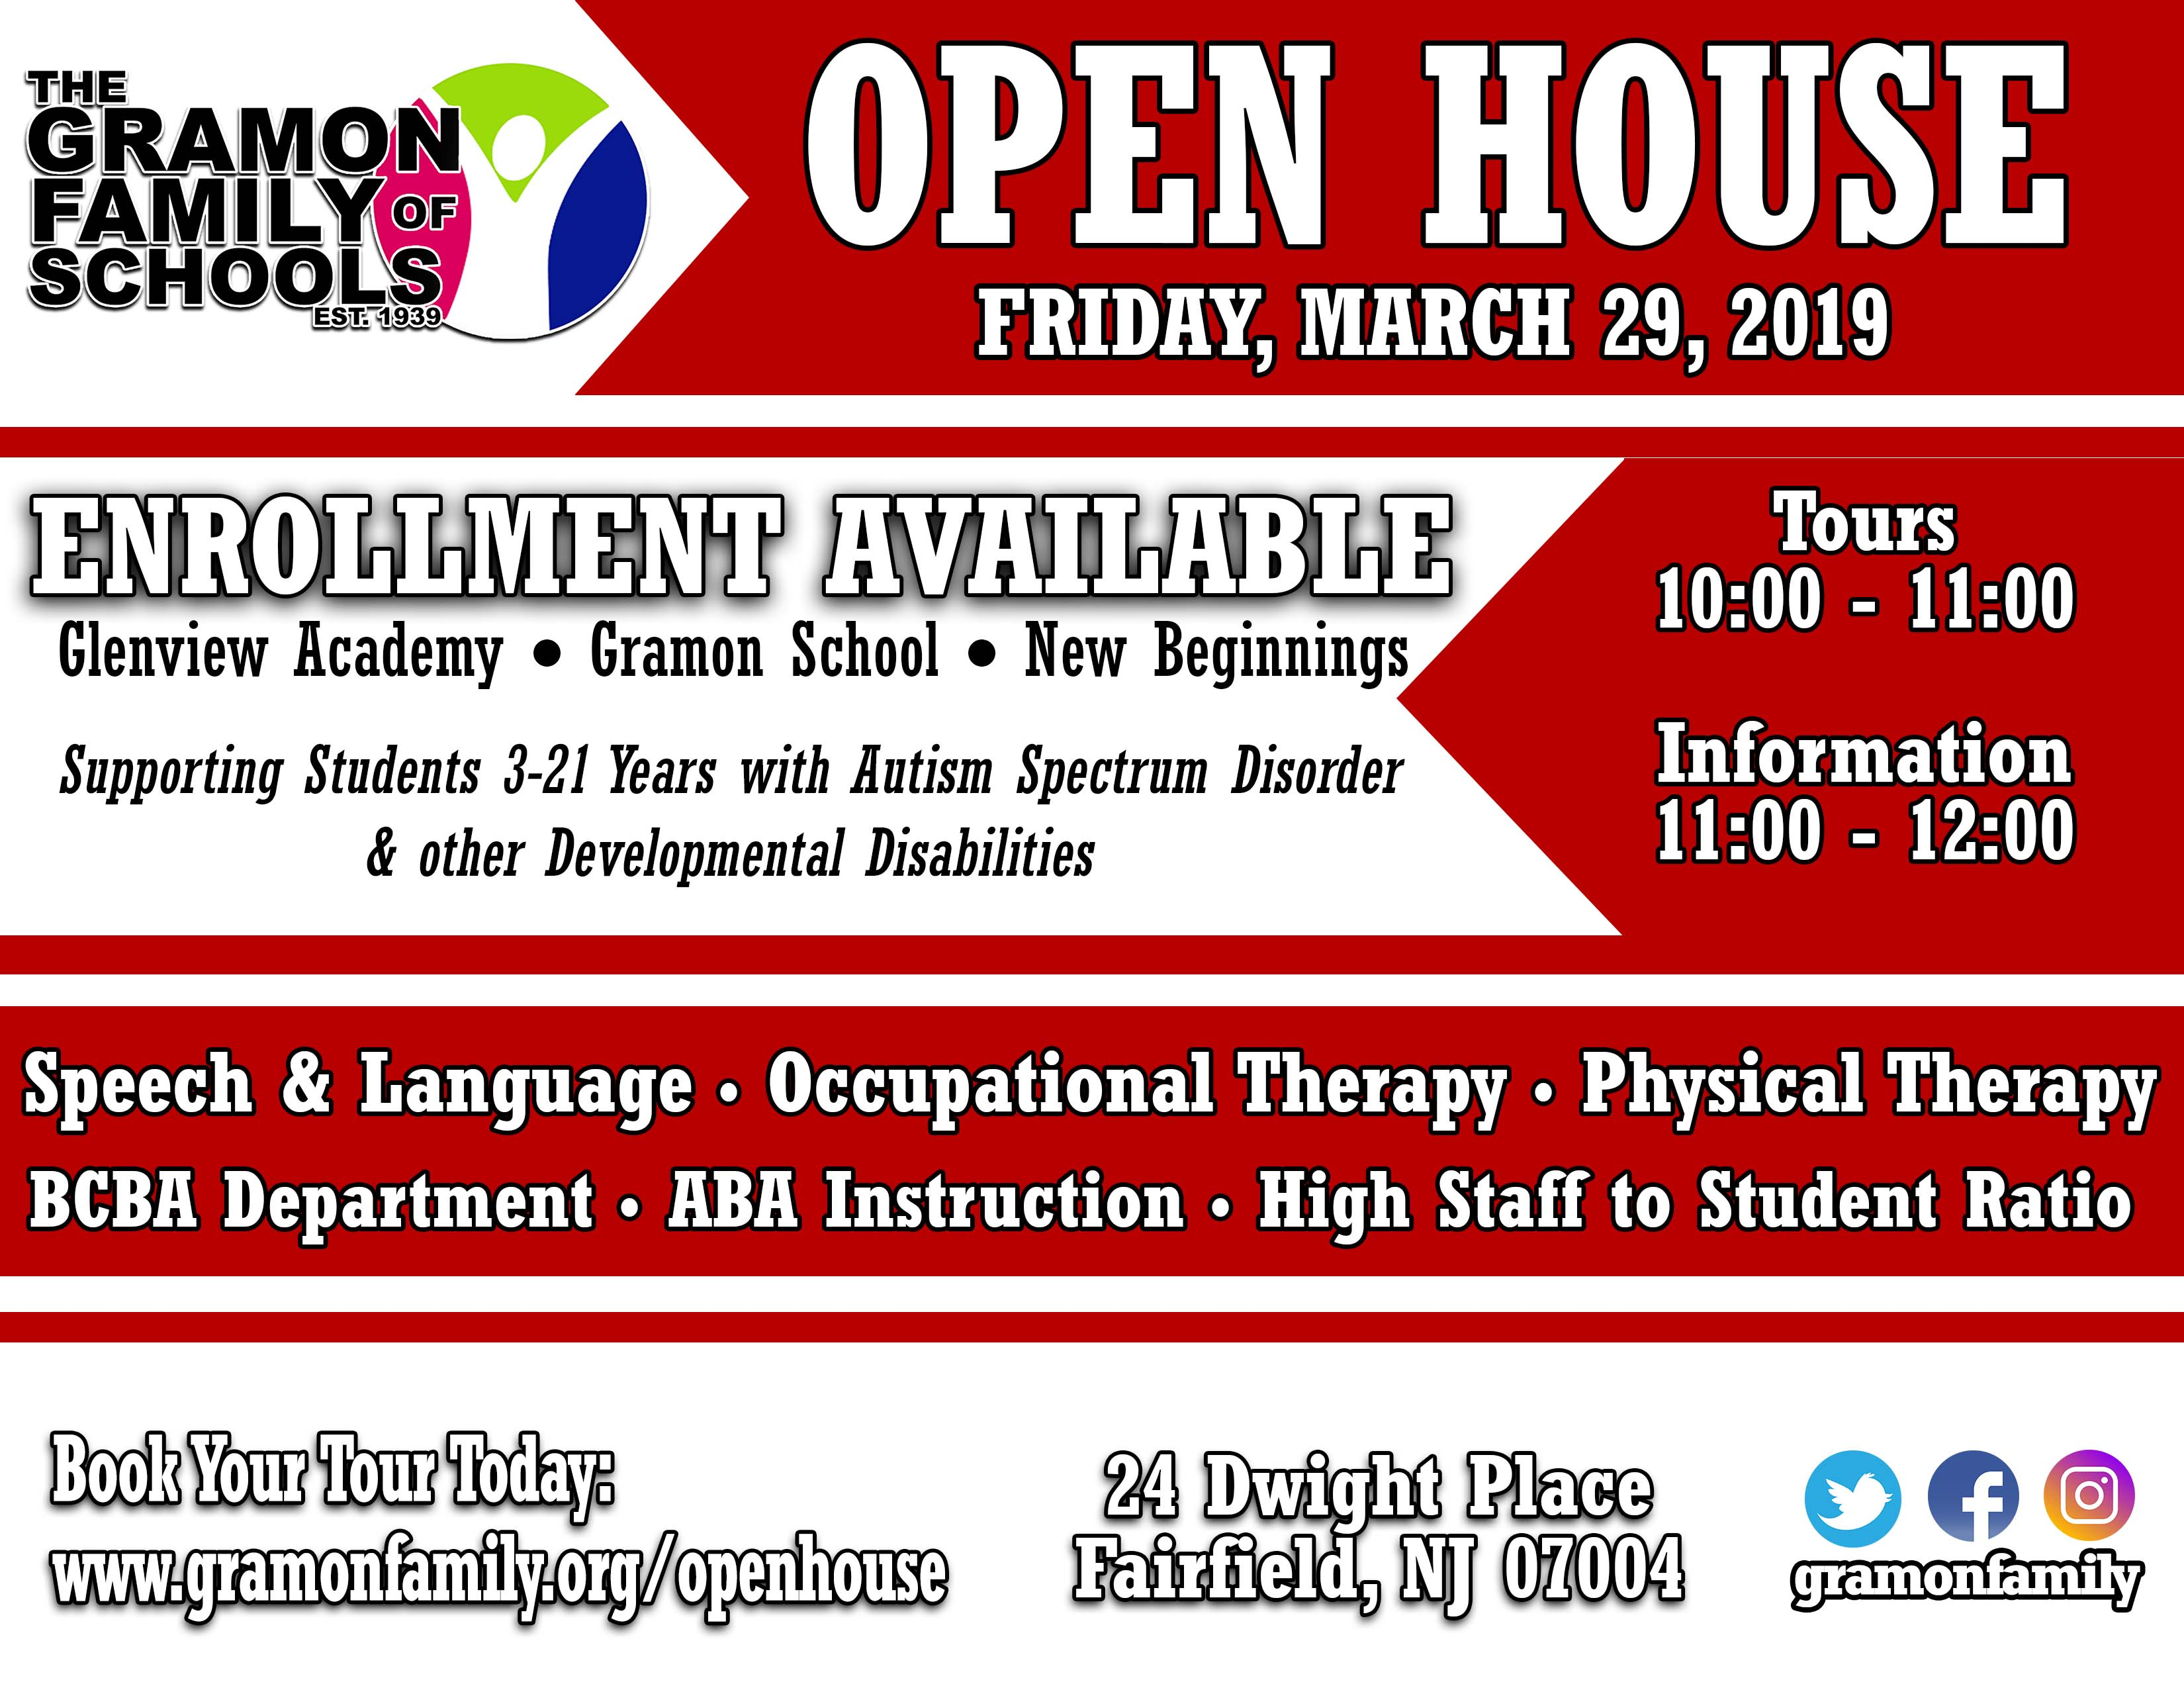 The Gramon Family of Schools OPEN HOUSE 2019